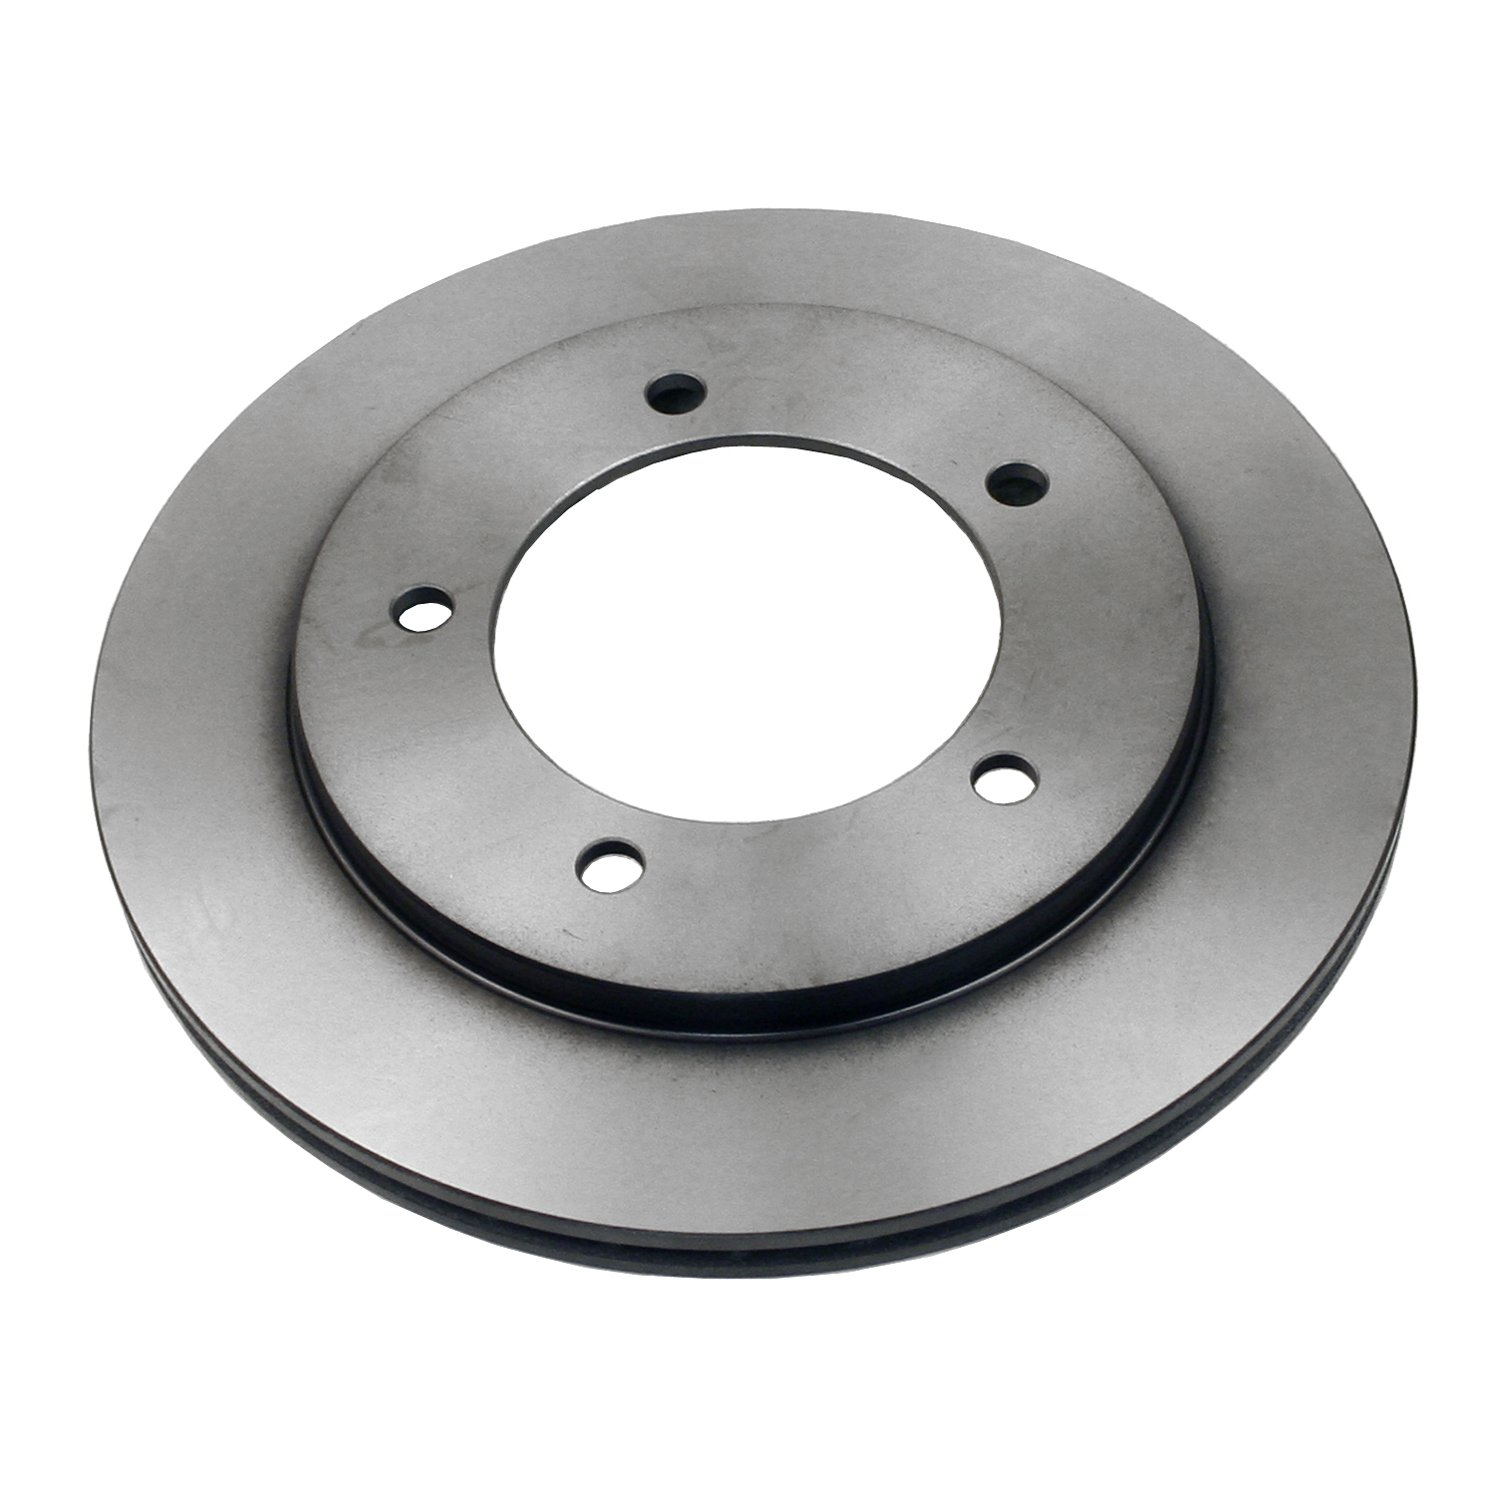 Amazon com: Beck Arnley 083-2863 Brake Disc: Automotive